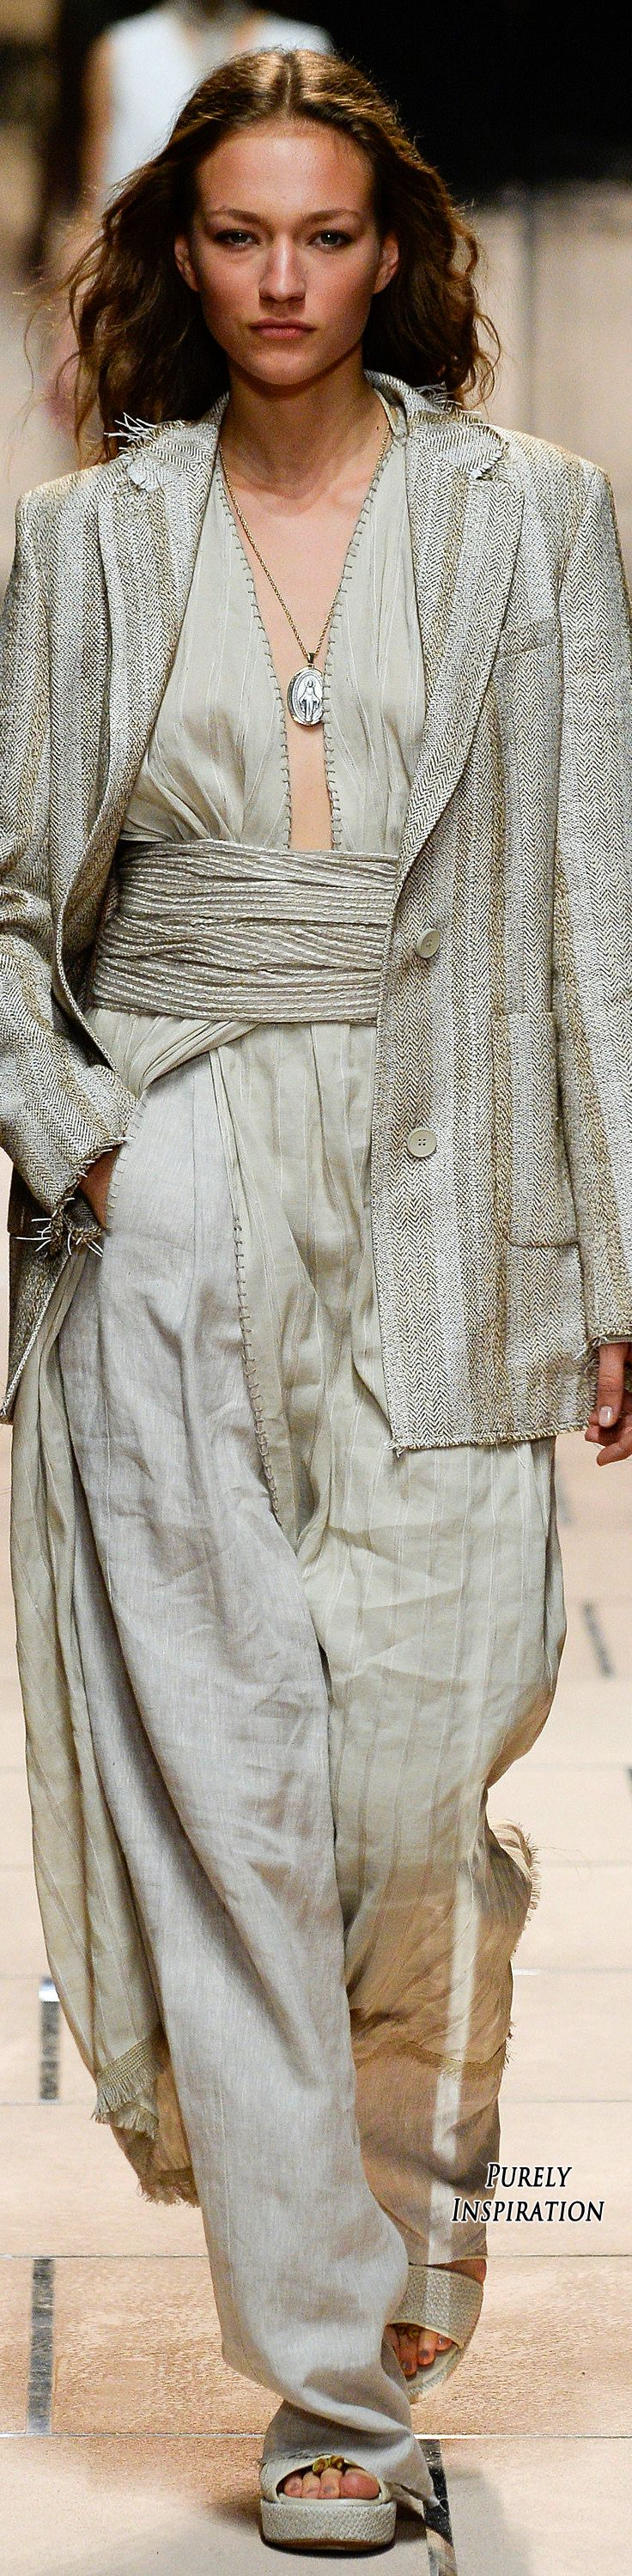 Trussardi SS2016 Women's Fashion RTW | Purely Inspiration